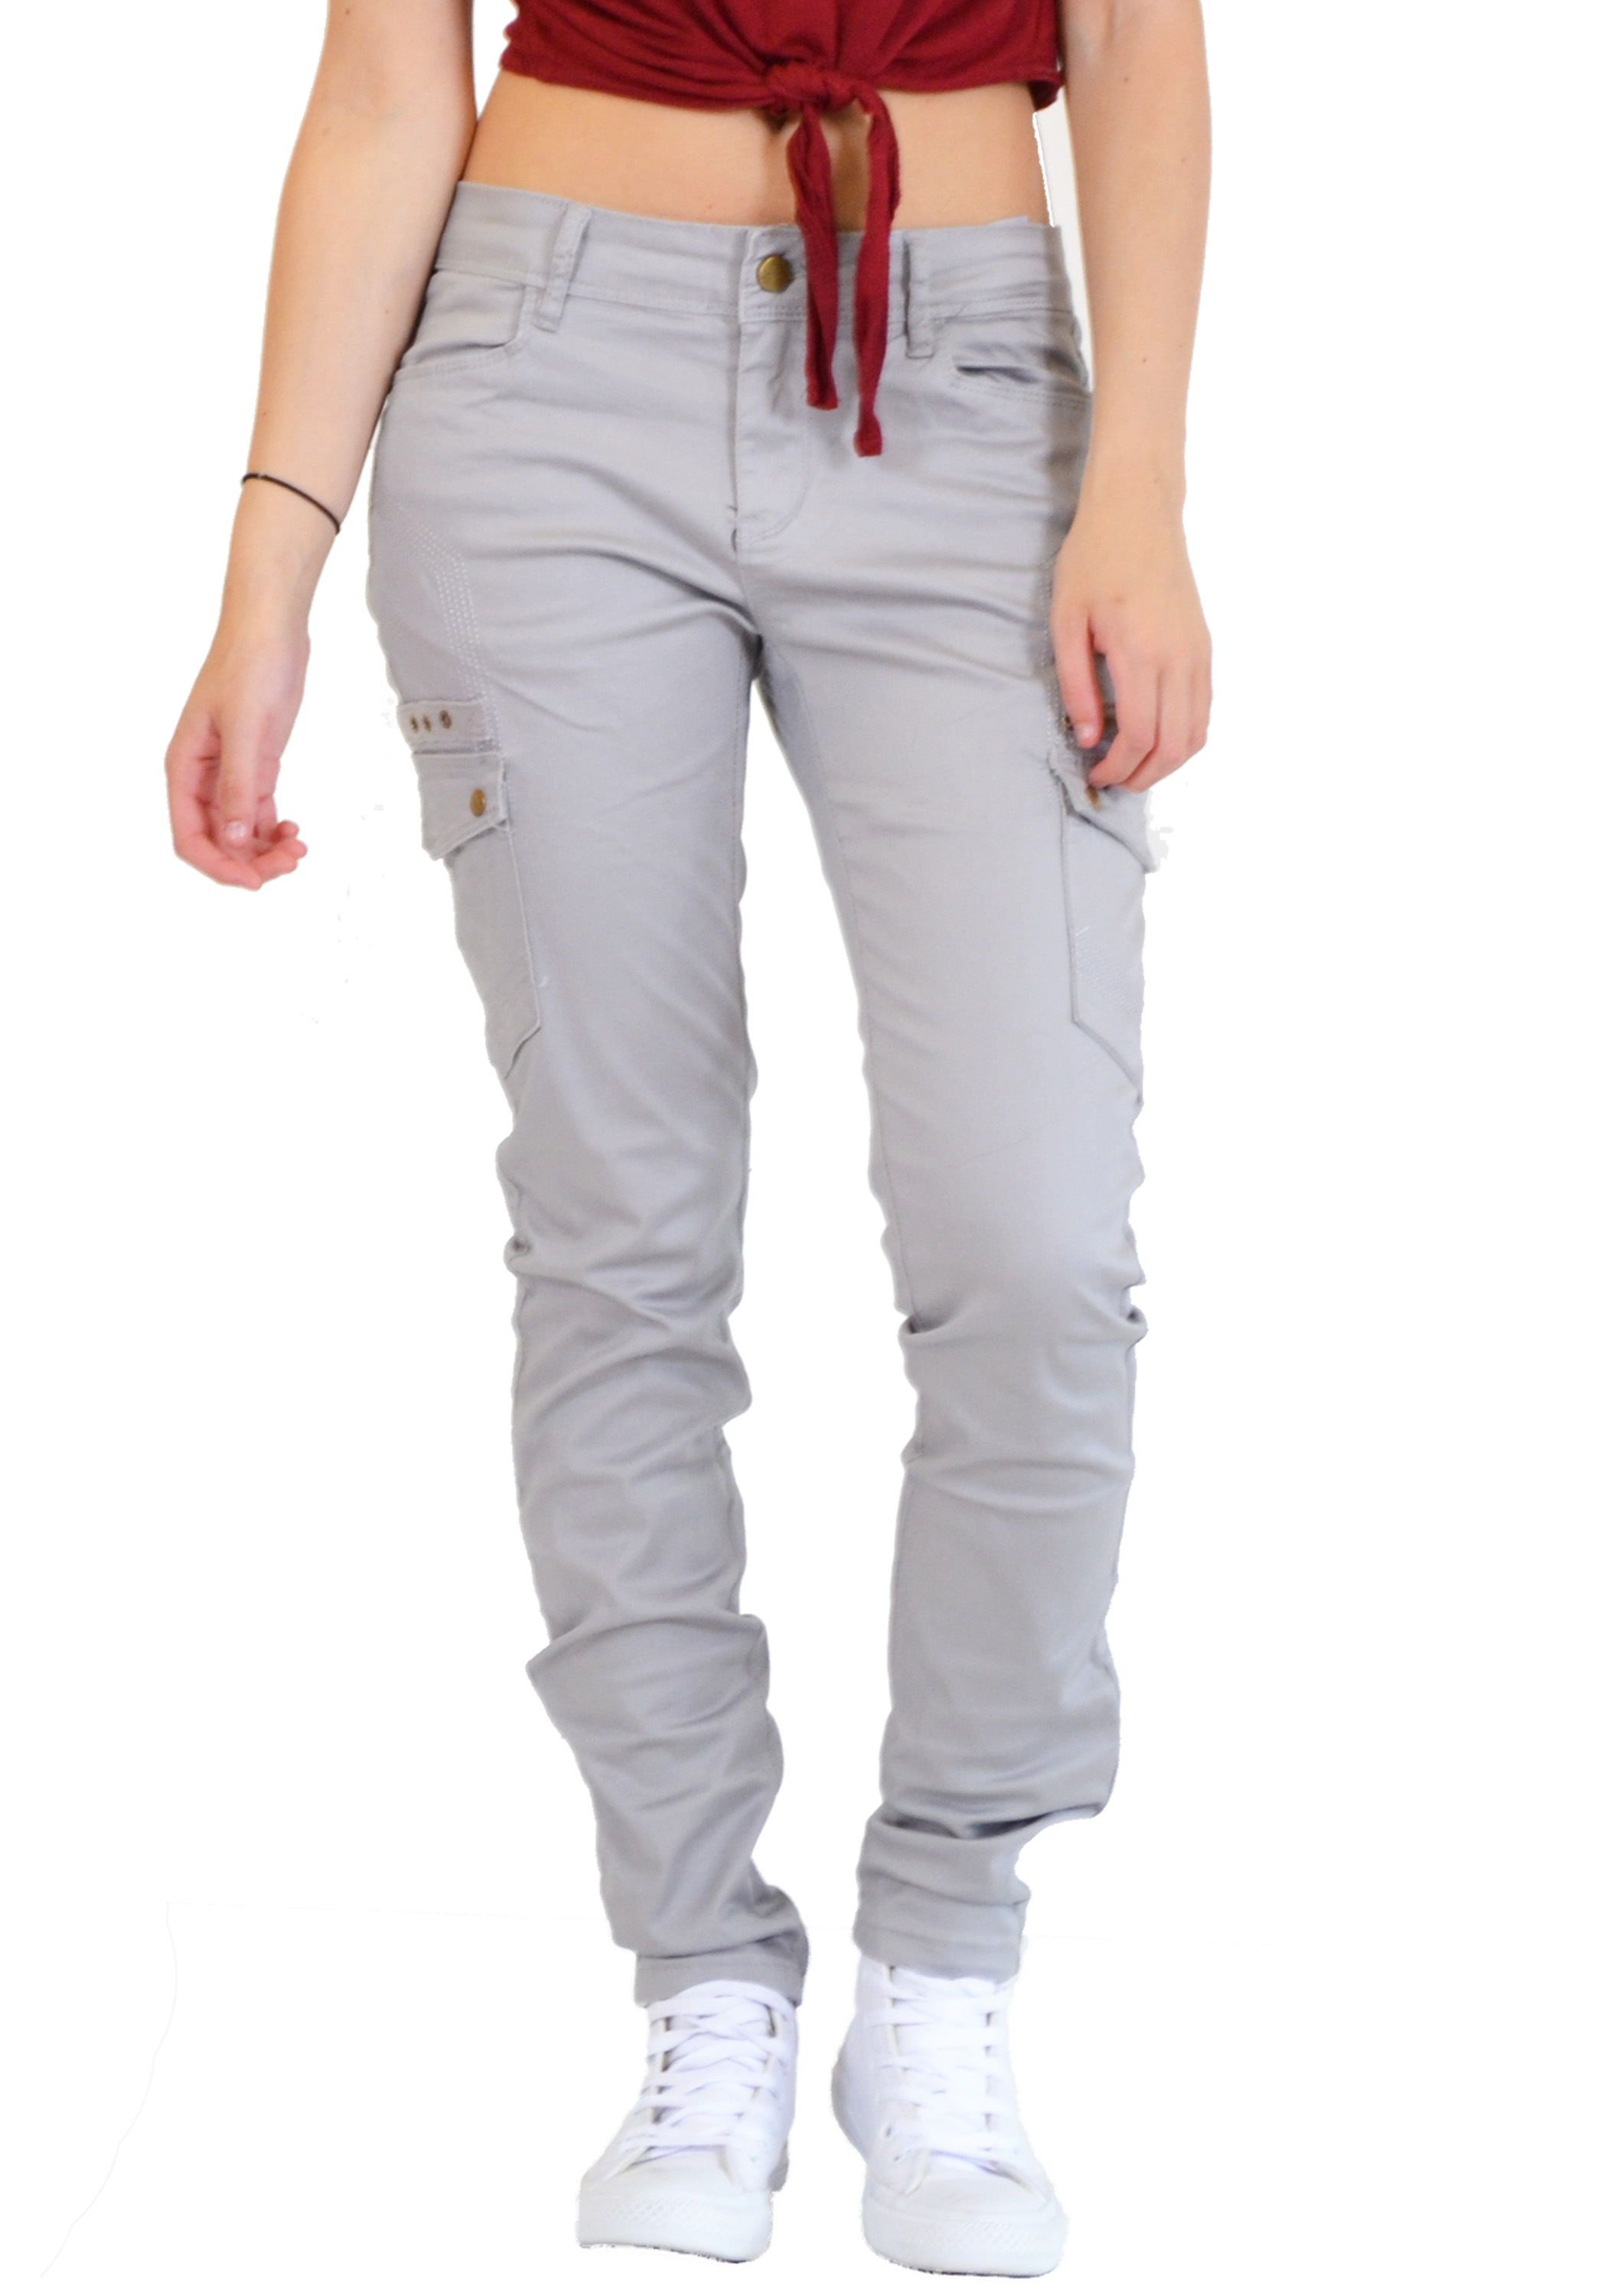 Model  Womens Red Slim Skinny Fitted Combat Jeans Trousers Cargo Pants  EBay